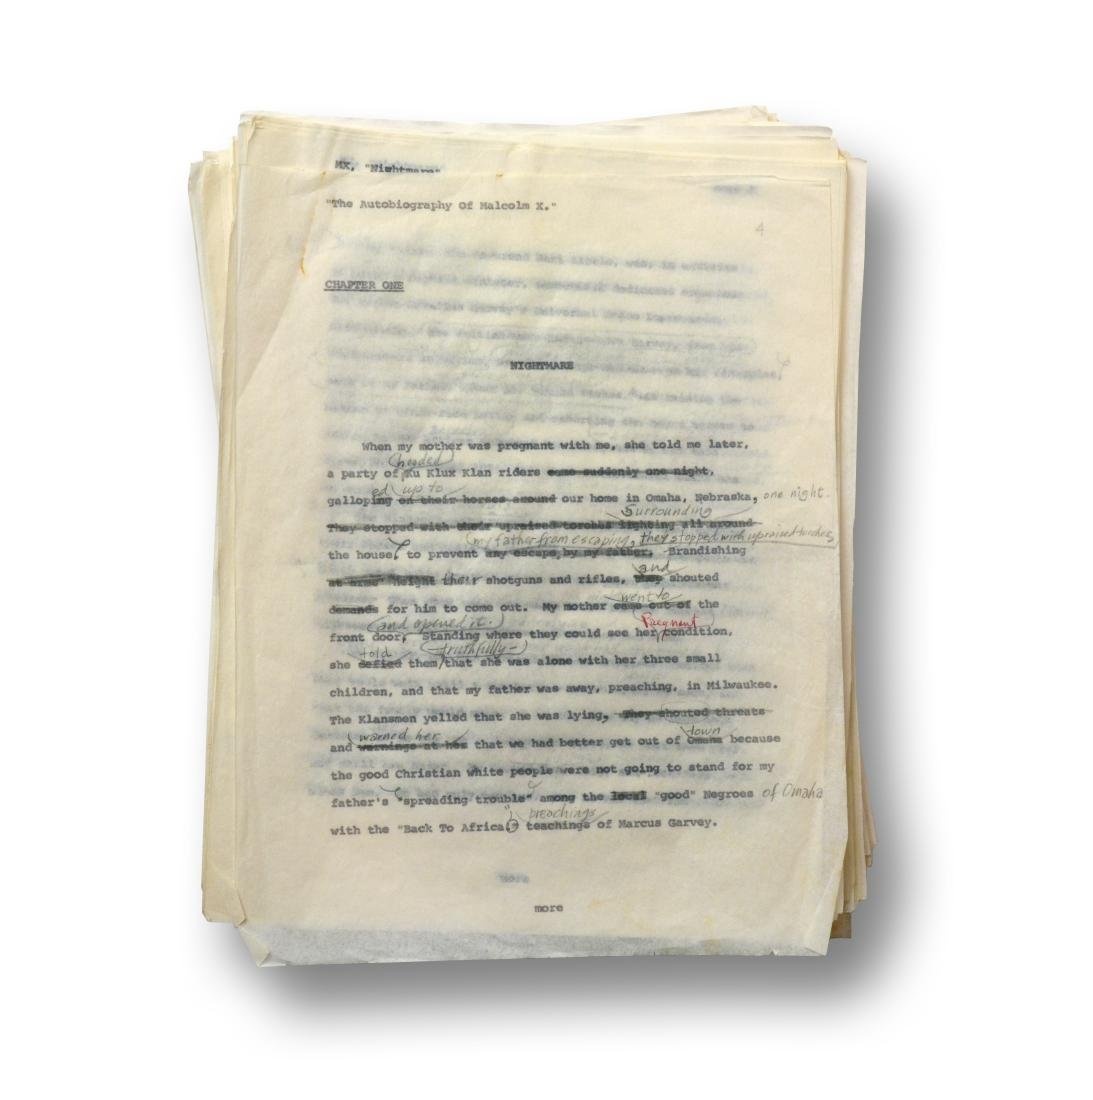 Malcolm X Manuscript, notes by Malcolm X and Alex Haley